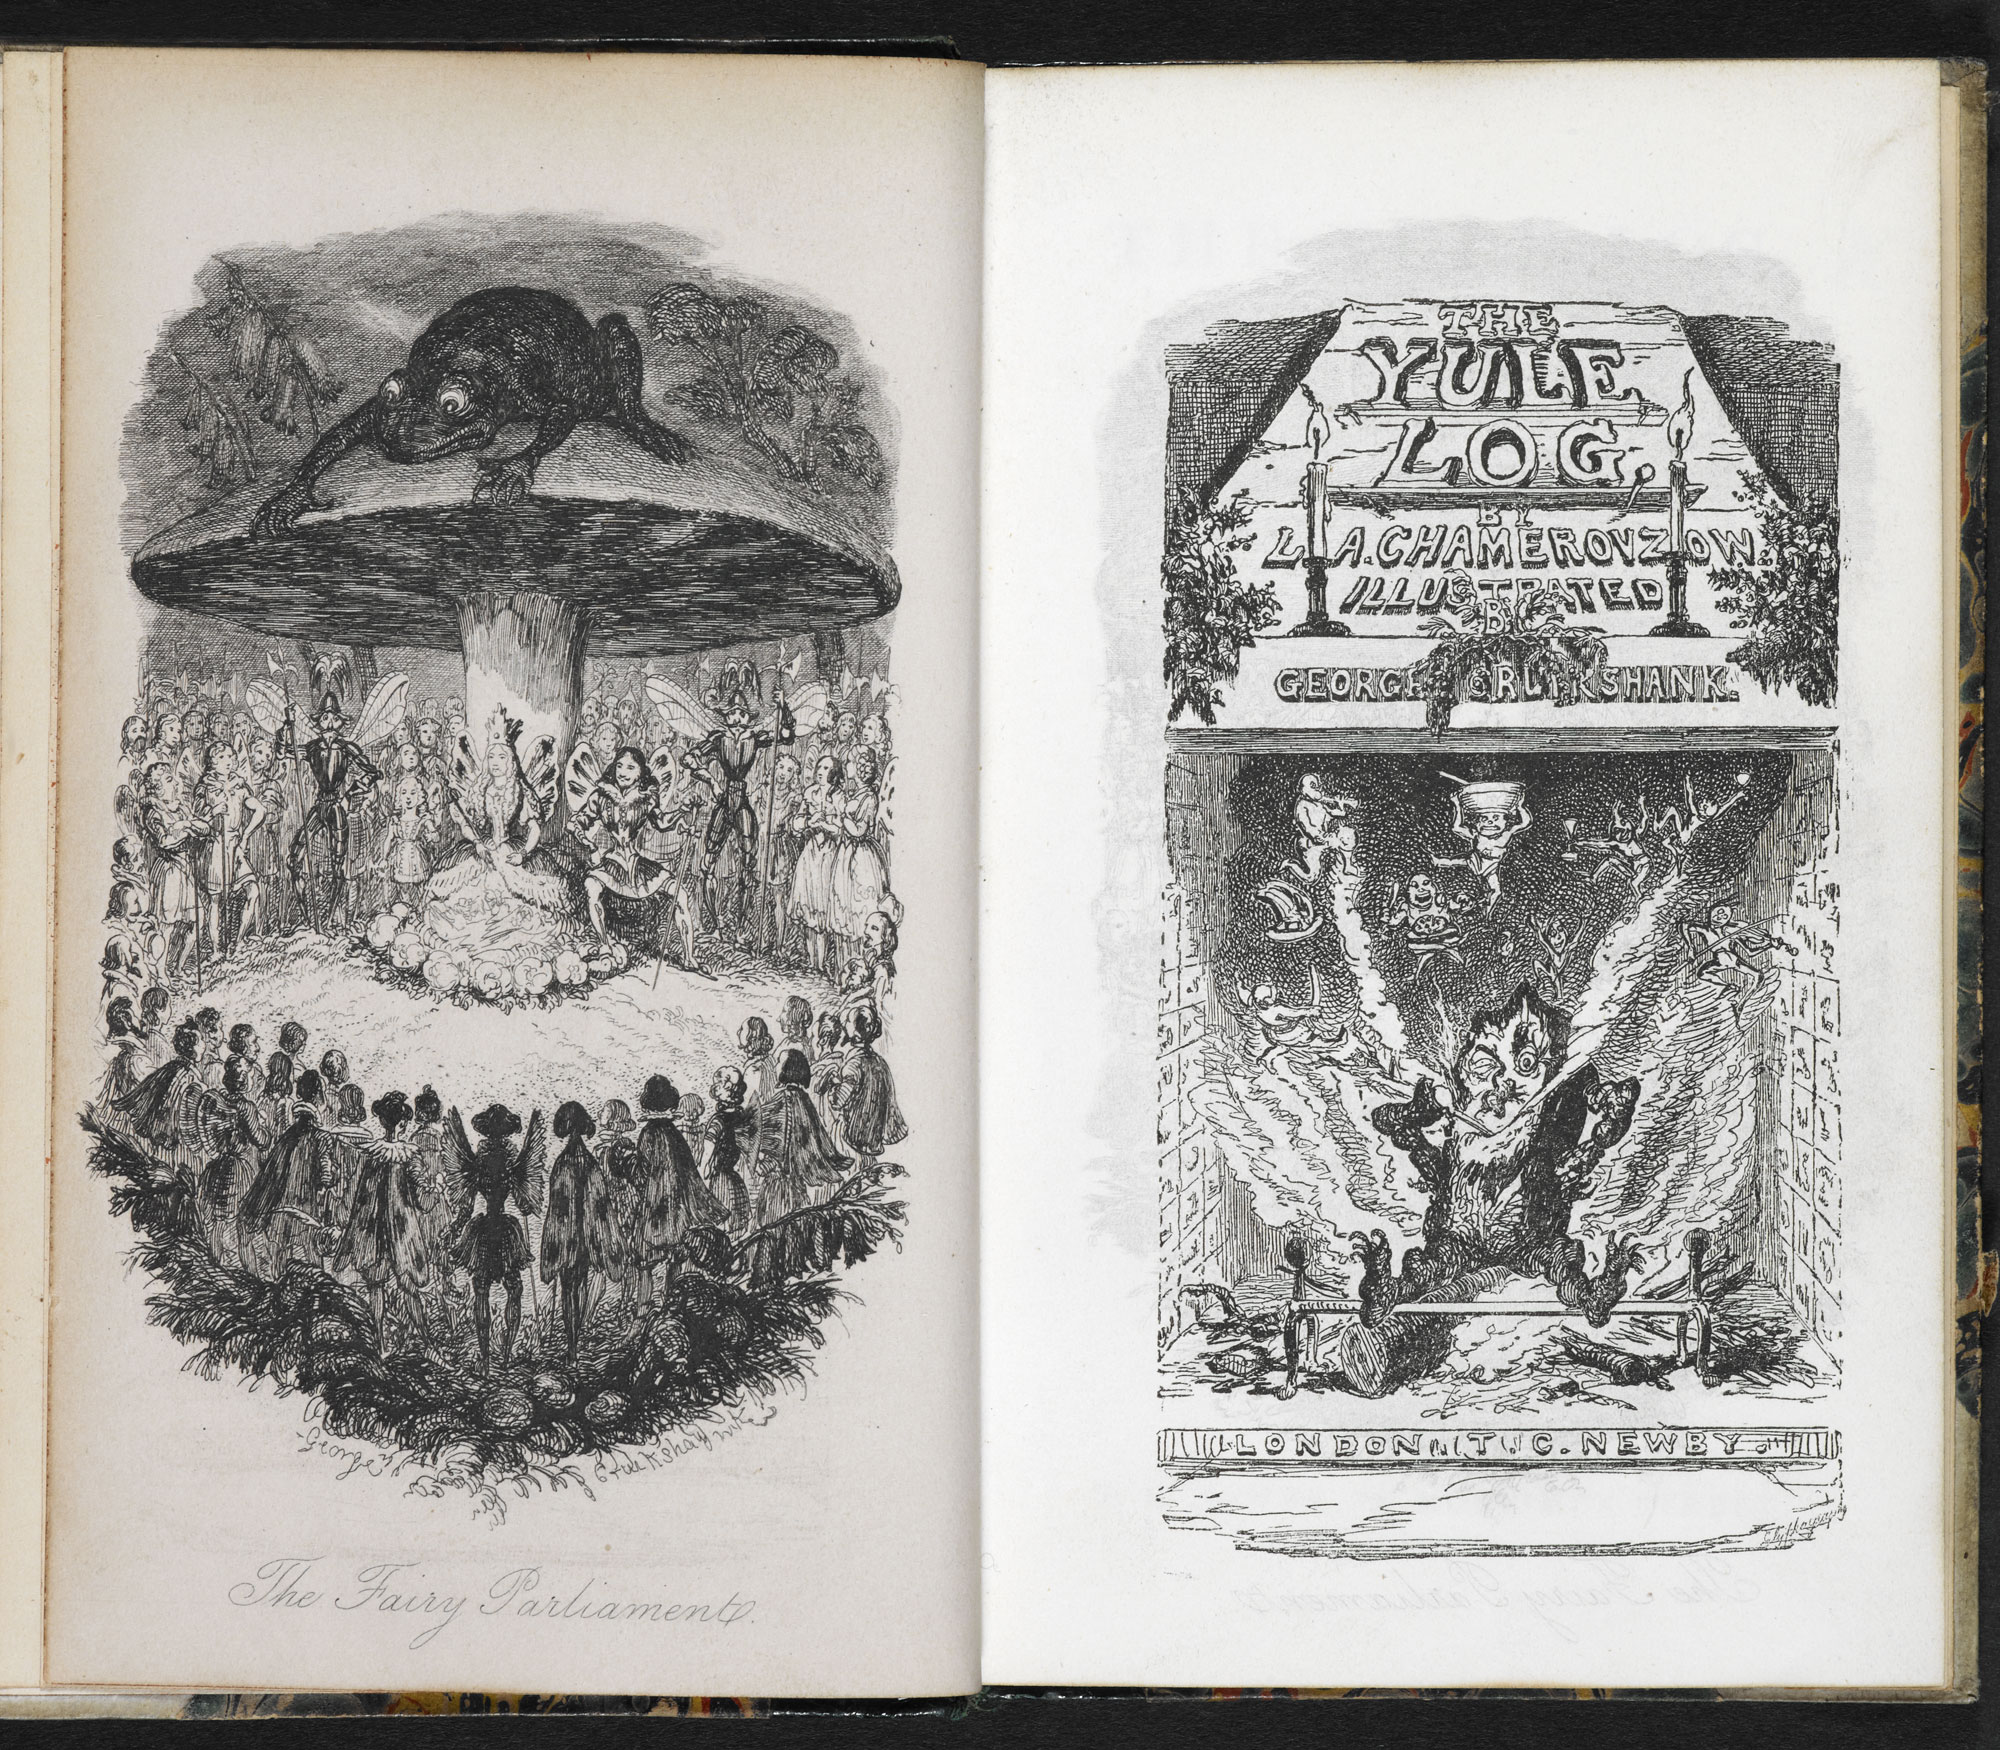 The Yule Log, a Christmas book with illustrations by George Cruikshank [page: frontispiece and title page]